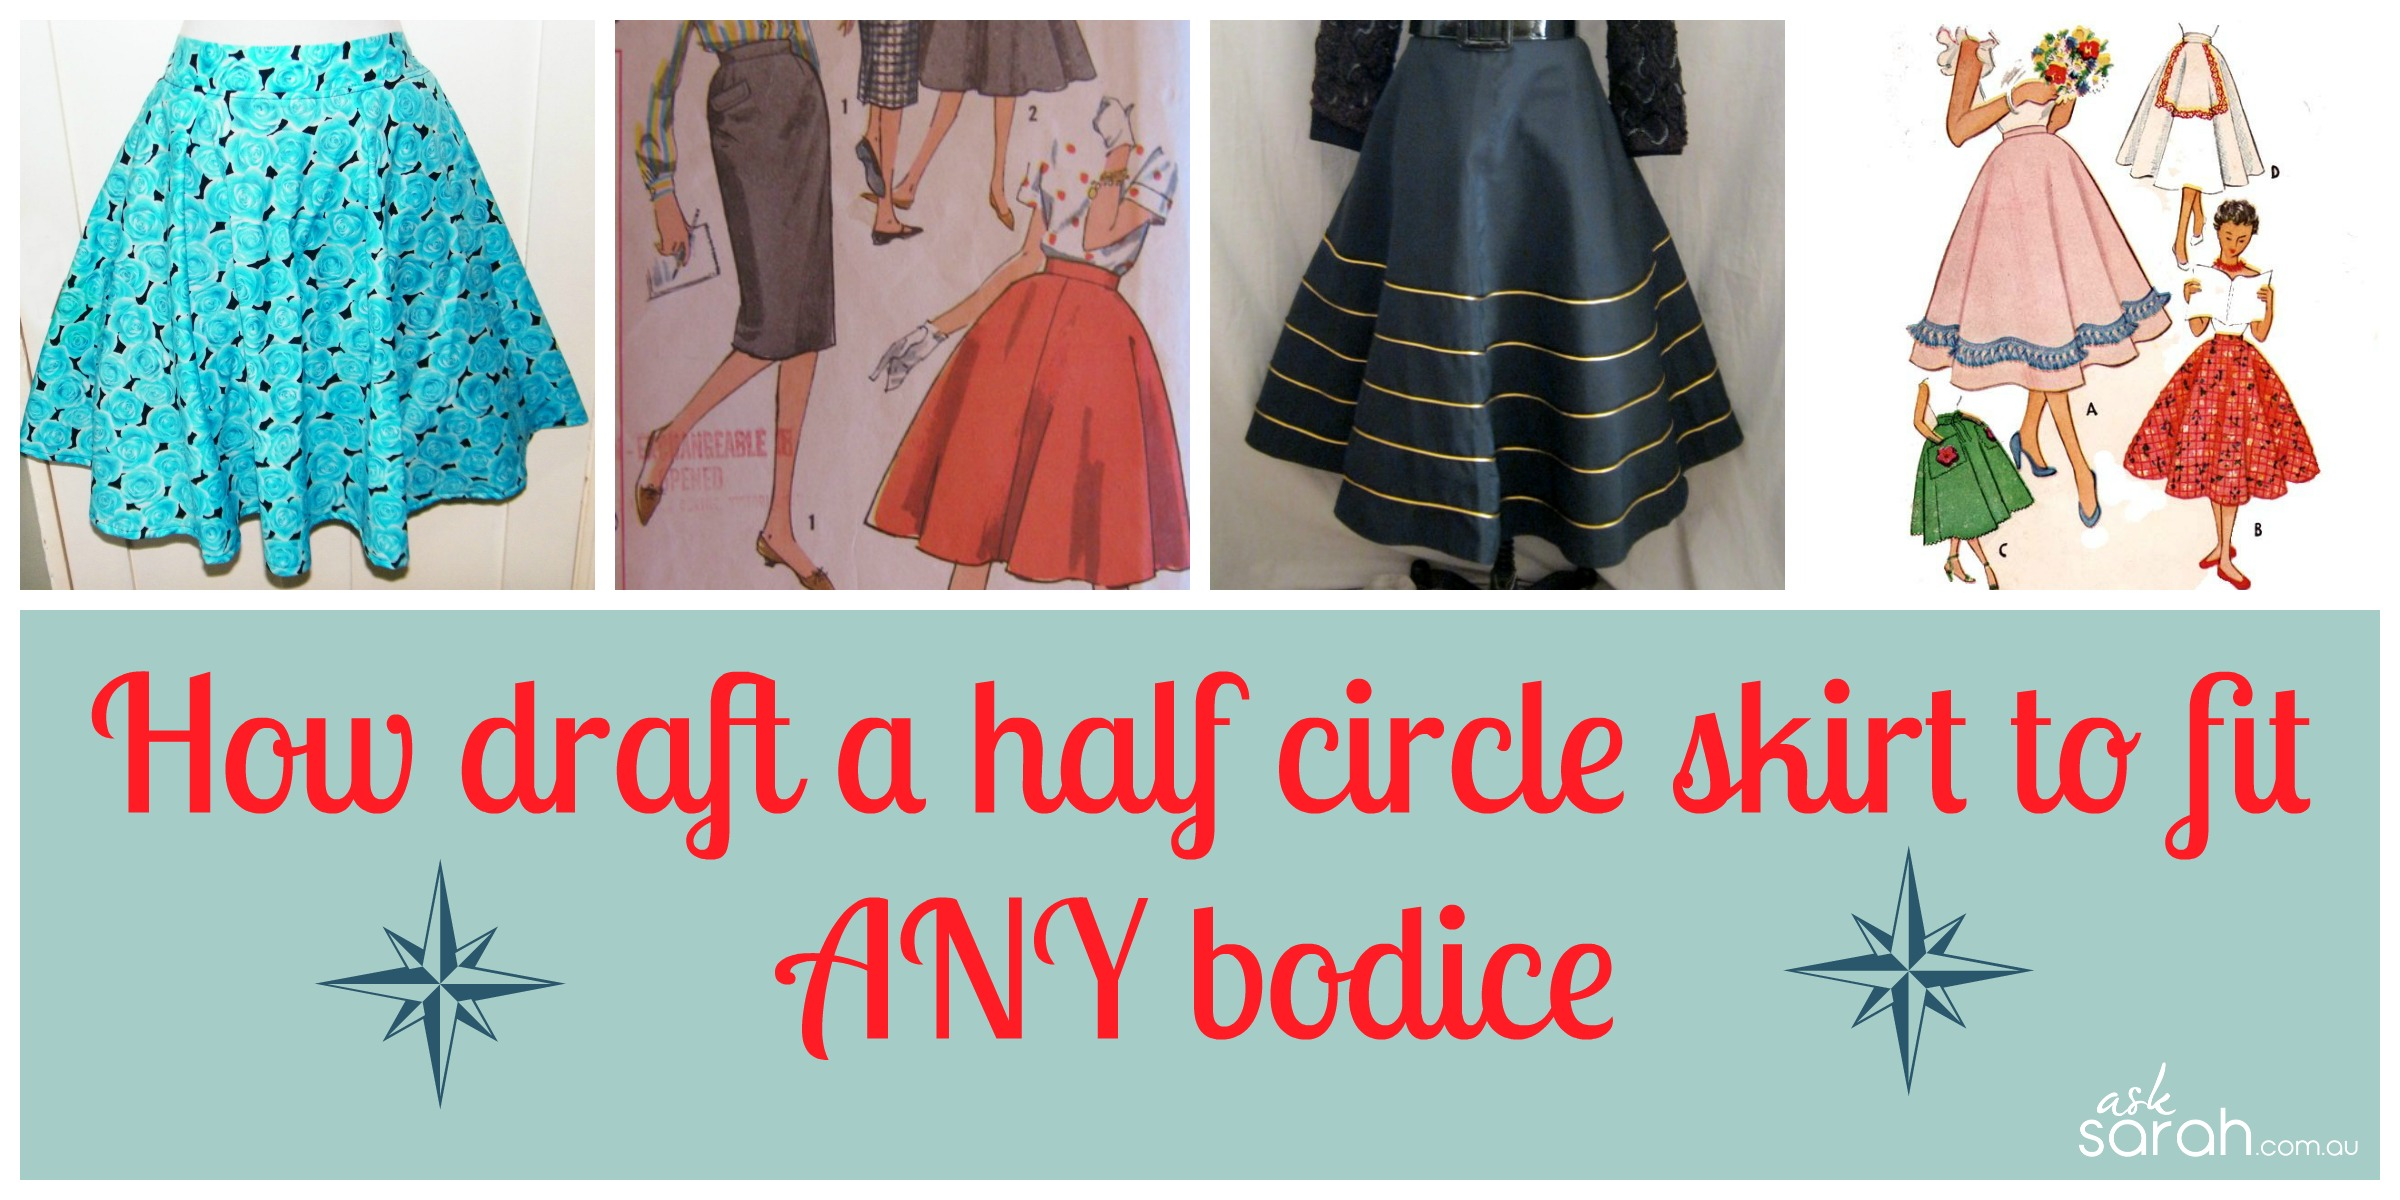 Sew: How To Draft A Half Circle Skirt For Any Woven Bodice